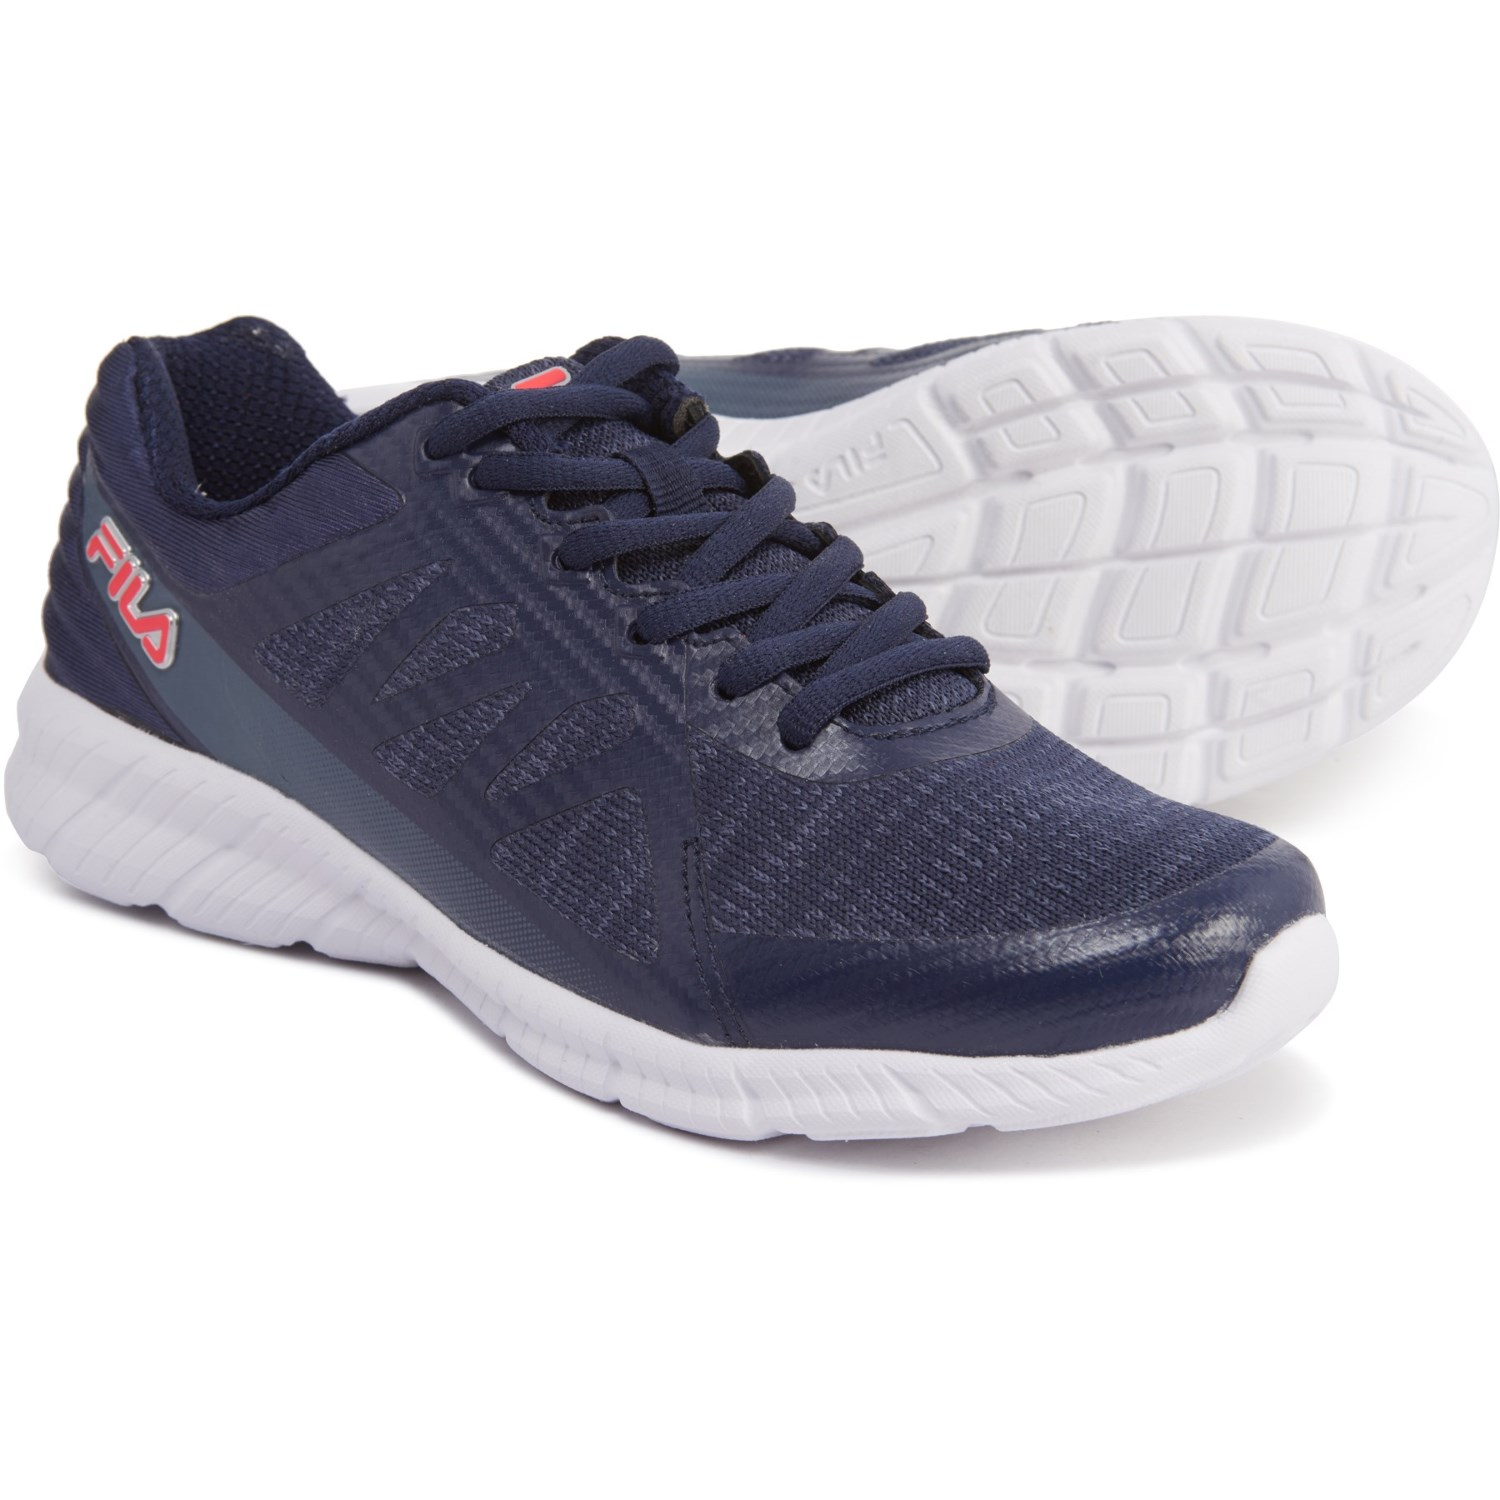 ebef9c7b03822 Fila Memory Finity 3 Running Shoes (For Women) - Save 33%